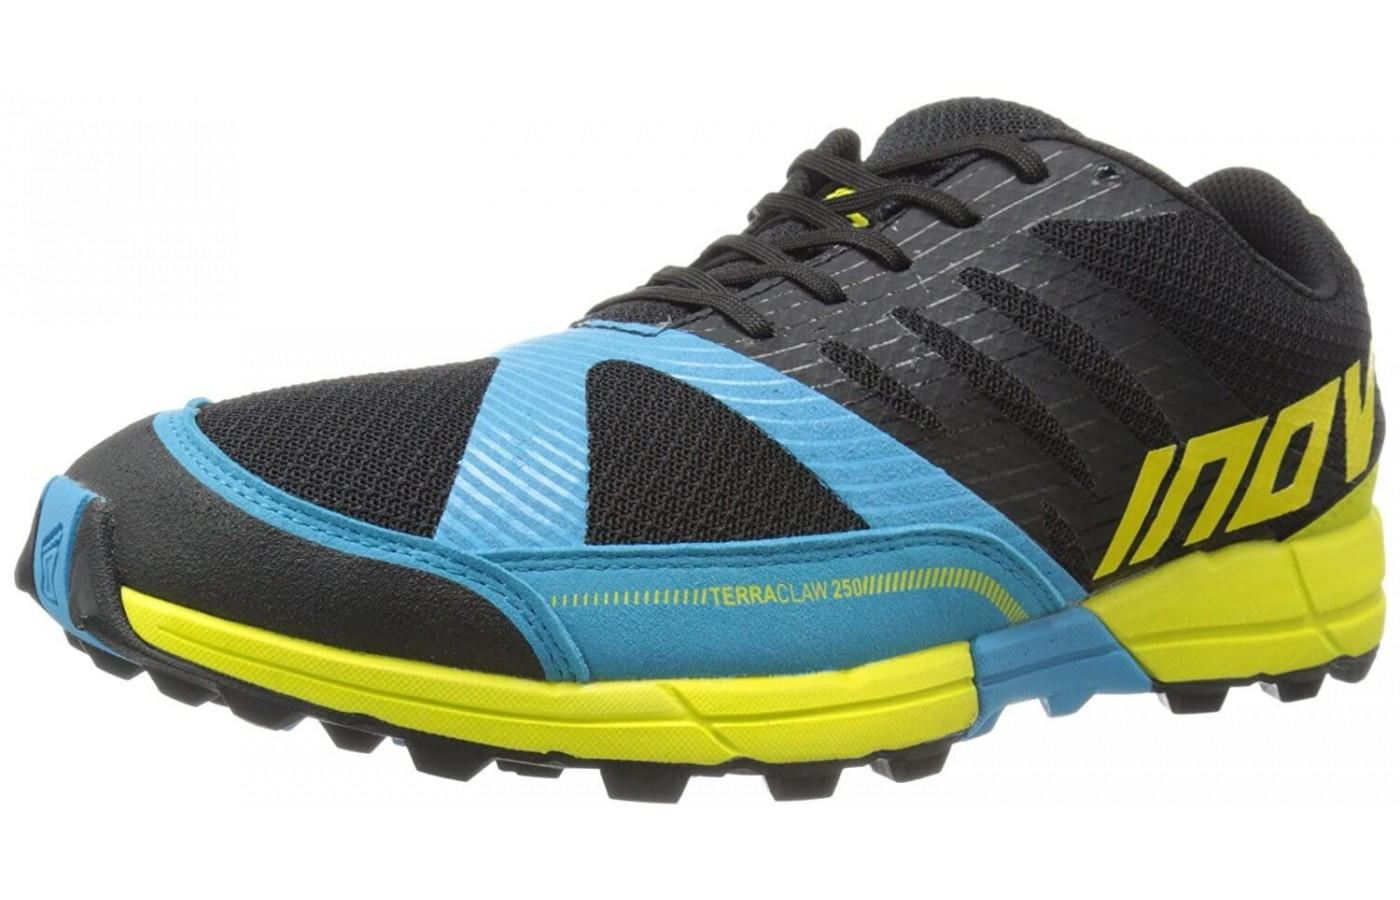 The Inov-8 Terraclaw 250 shown from the front/side